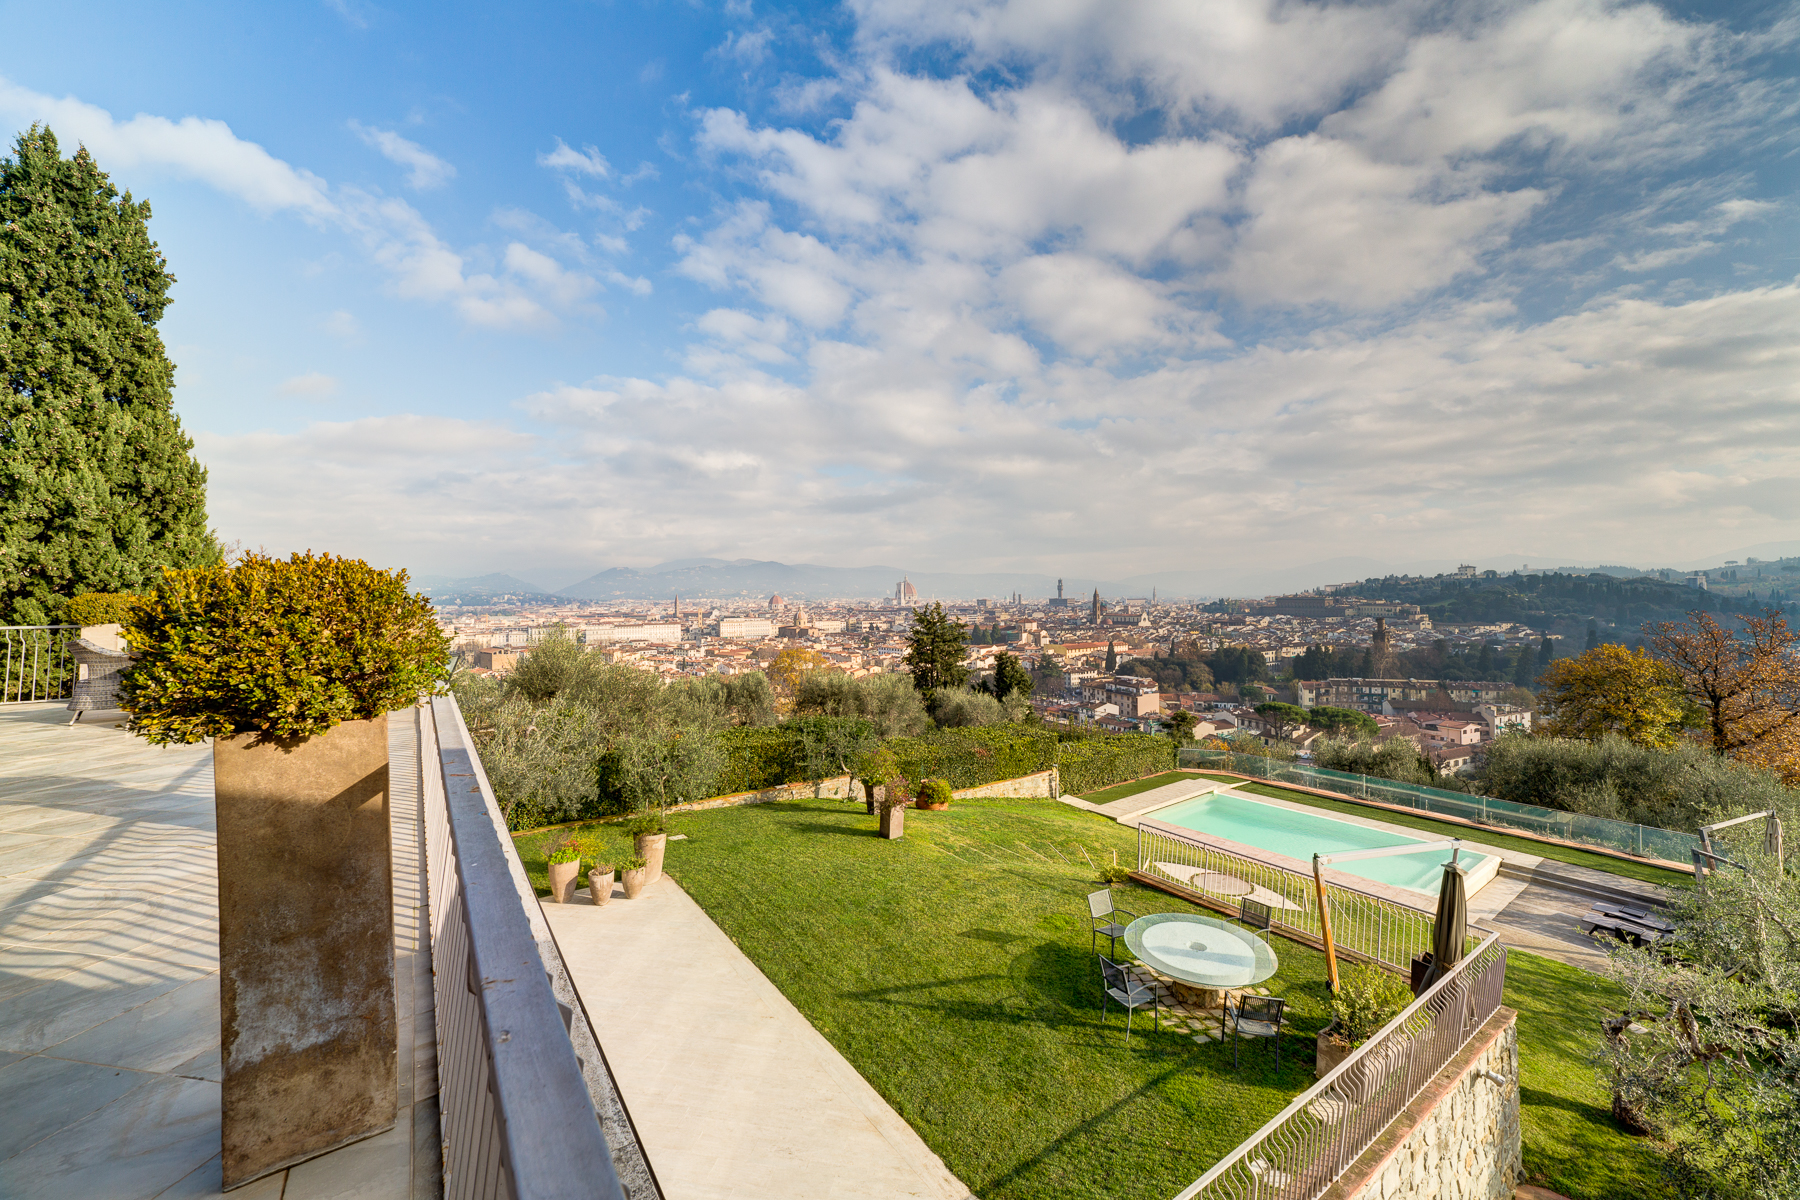 Single Family Home for Sale at A truly unique villa with views over Florence Bellosguardo Firenze, Florence 50122 Italy